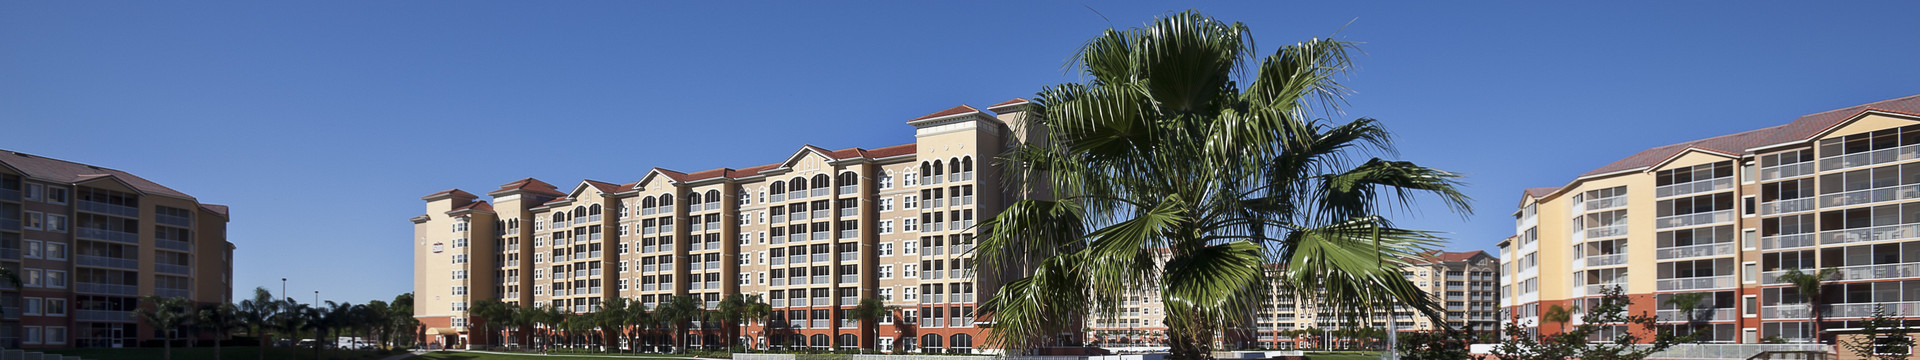 Kissimmee Hotel Deals & Specials | Exterior of Main Lobby